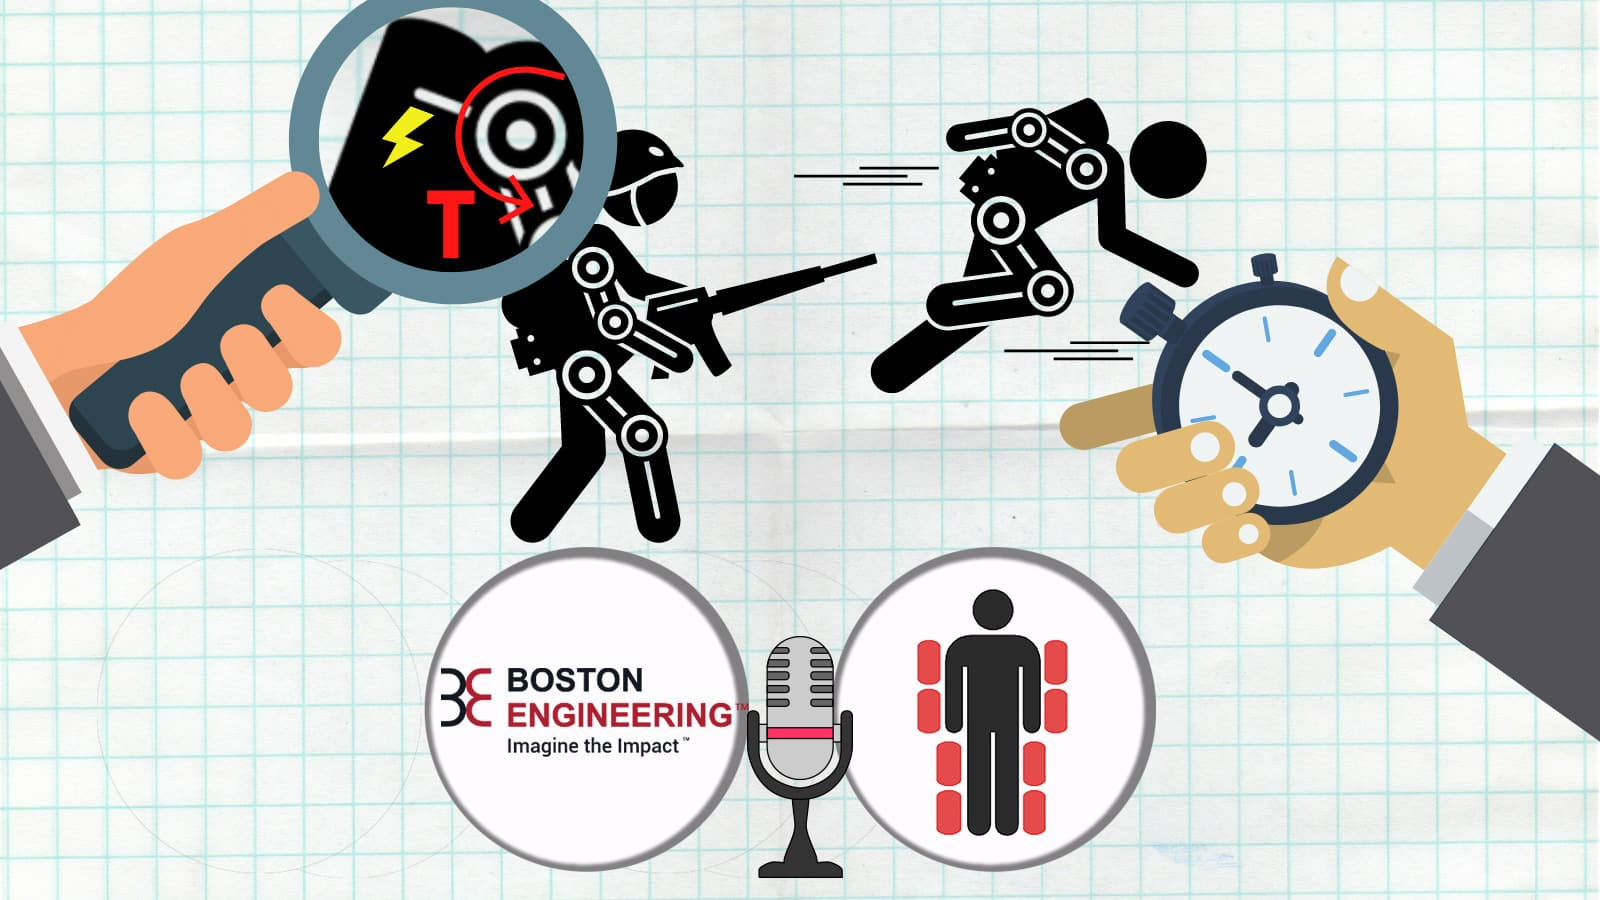 Exoskeleton 3rd Party Independent Testing In-depth Interview with Boston Engineering